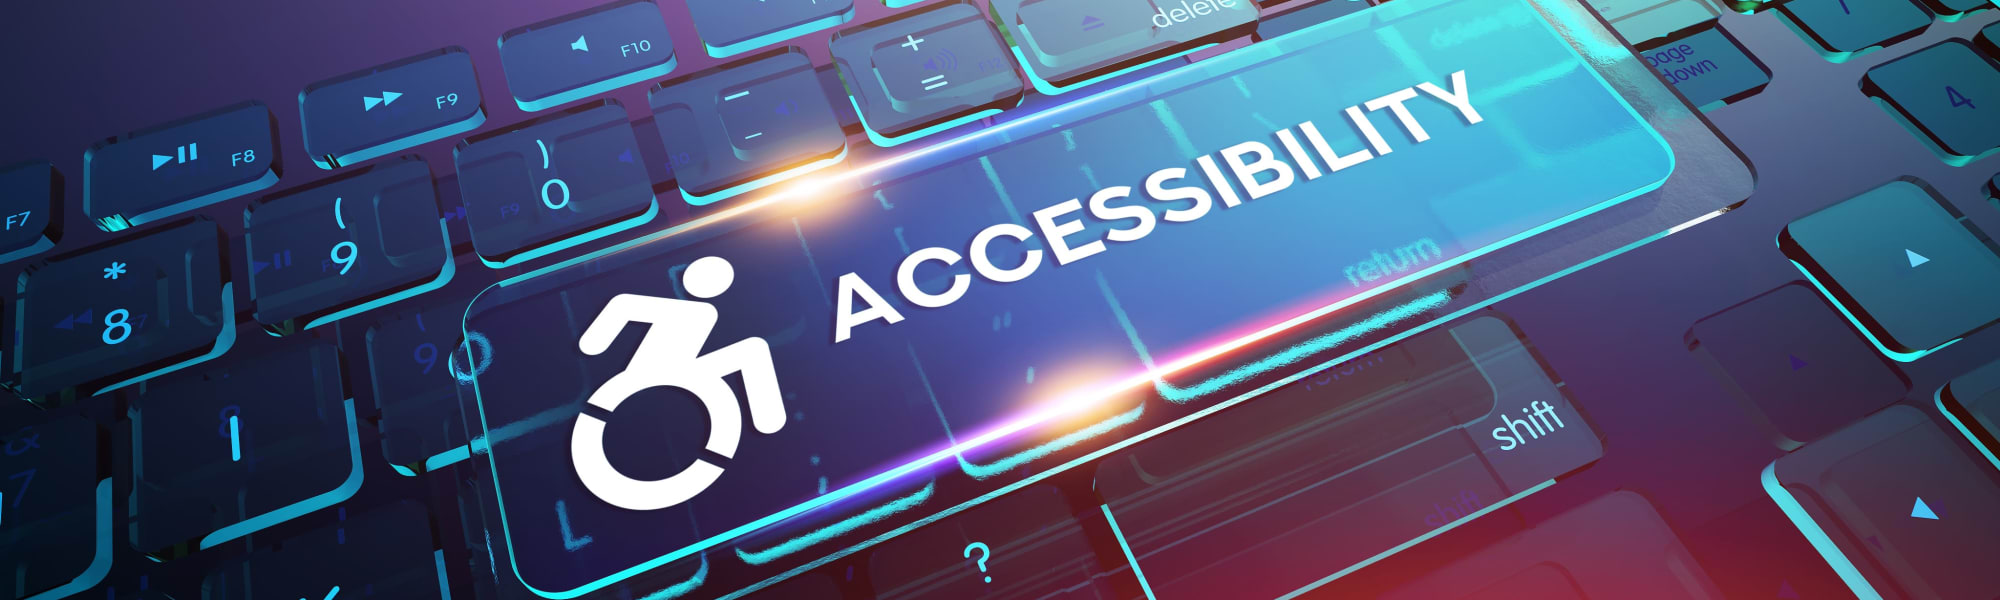 Accessibility policy for Olympus Team Ranch in Benbrook, Texas